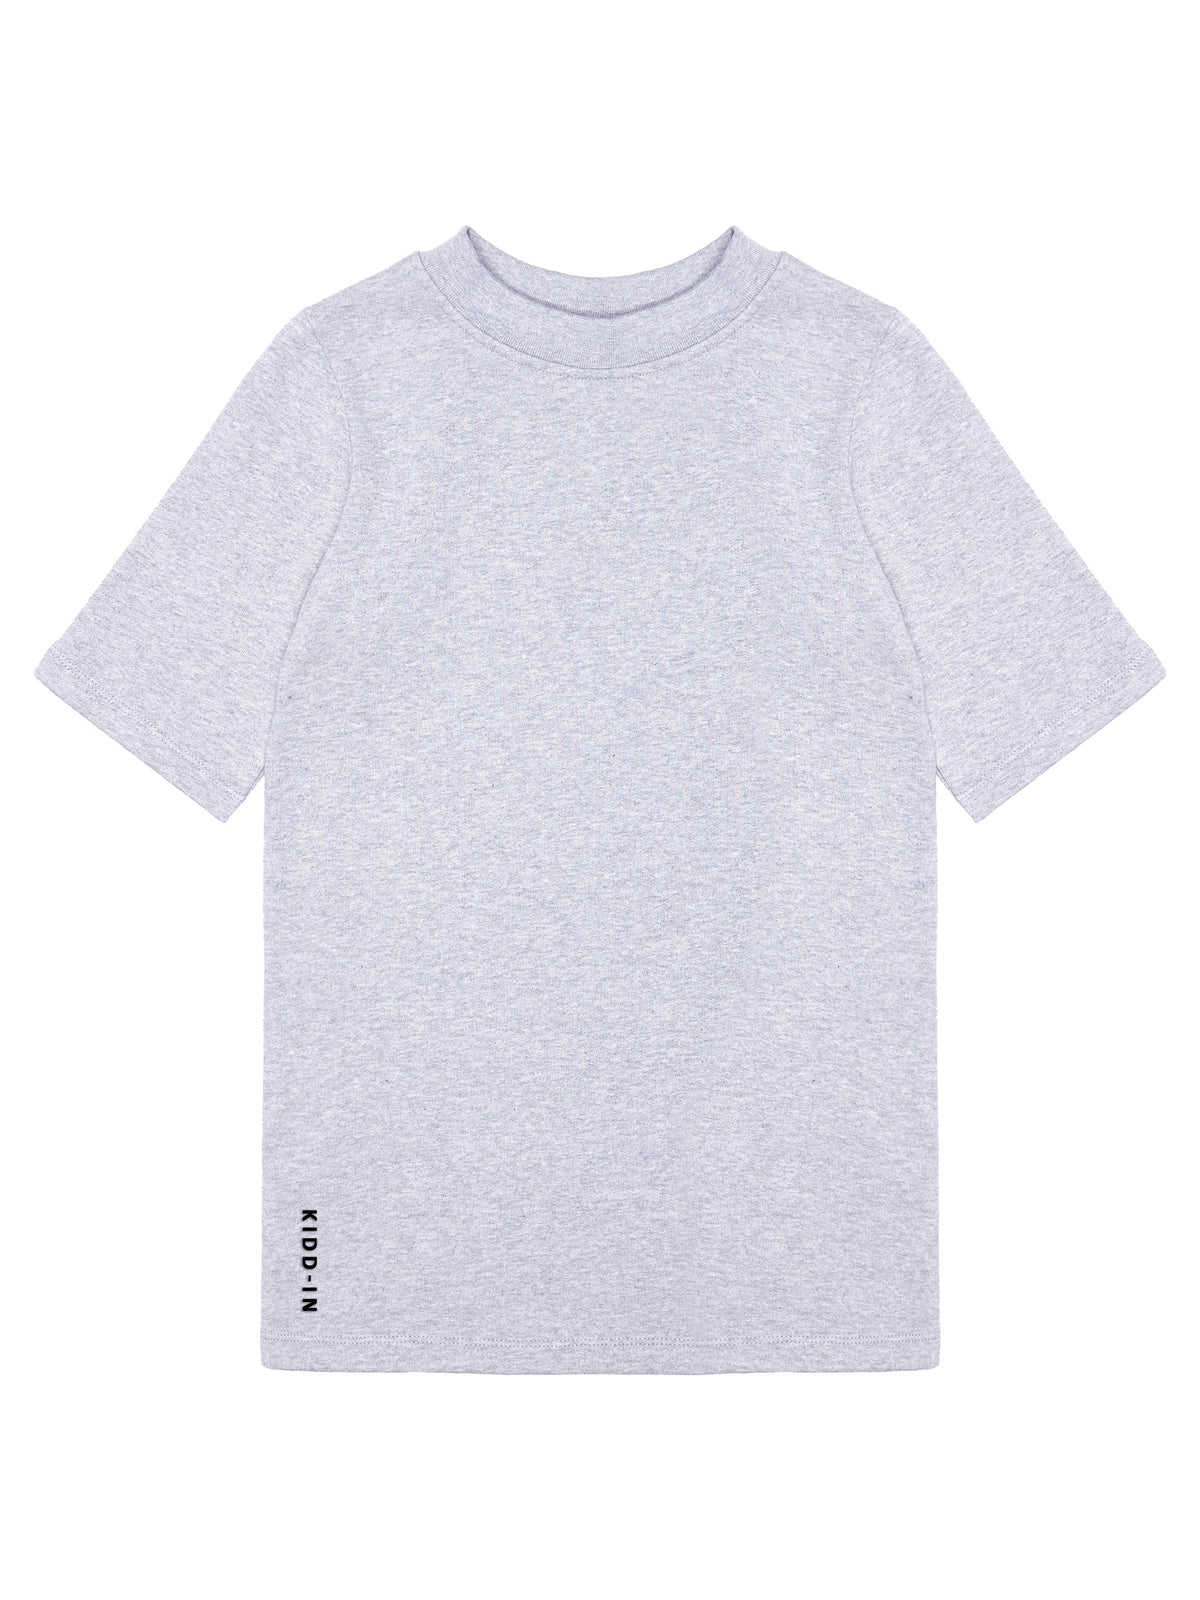 Longline Sweater-T Grey - KIDD-IN